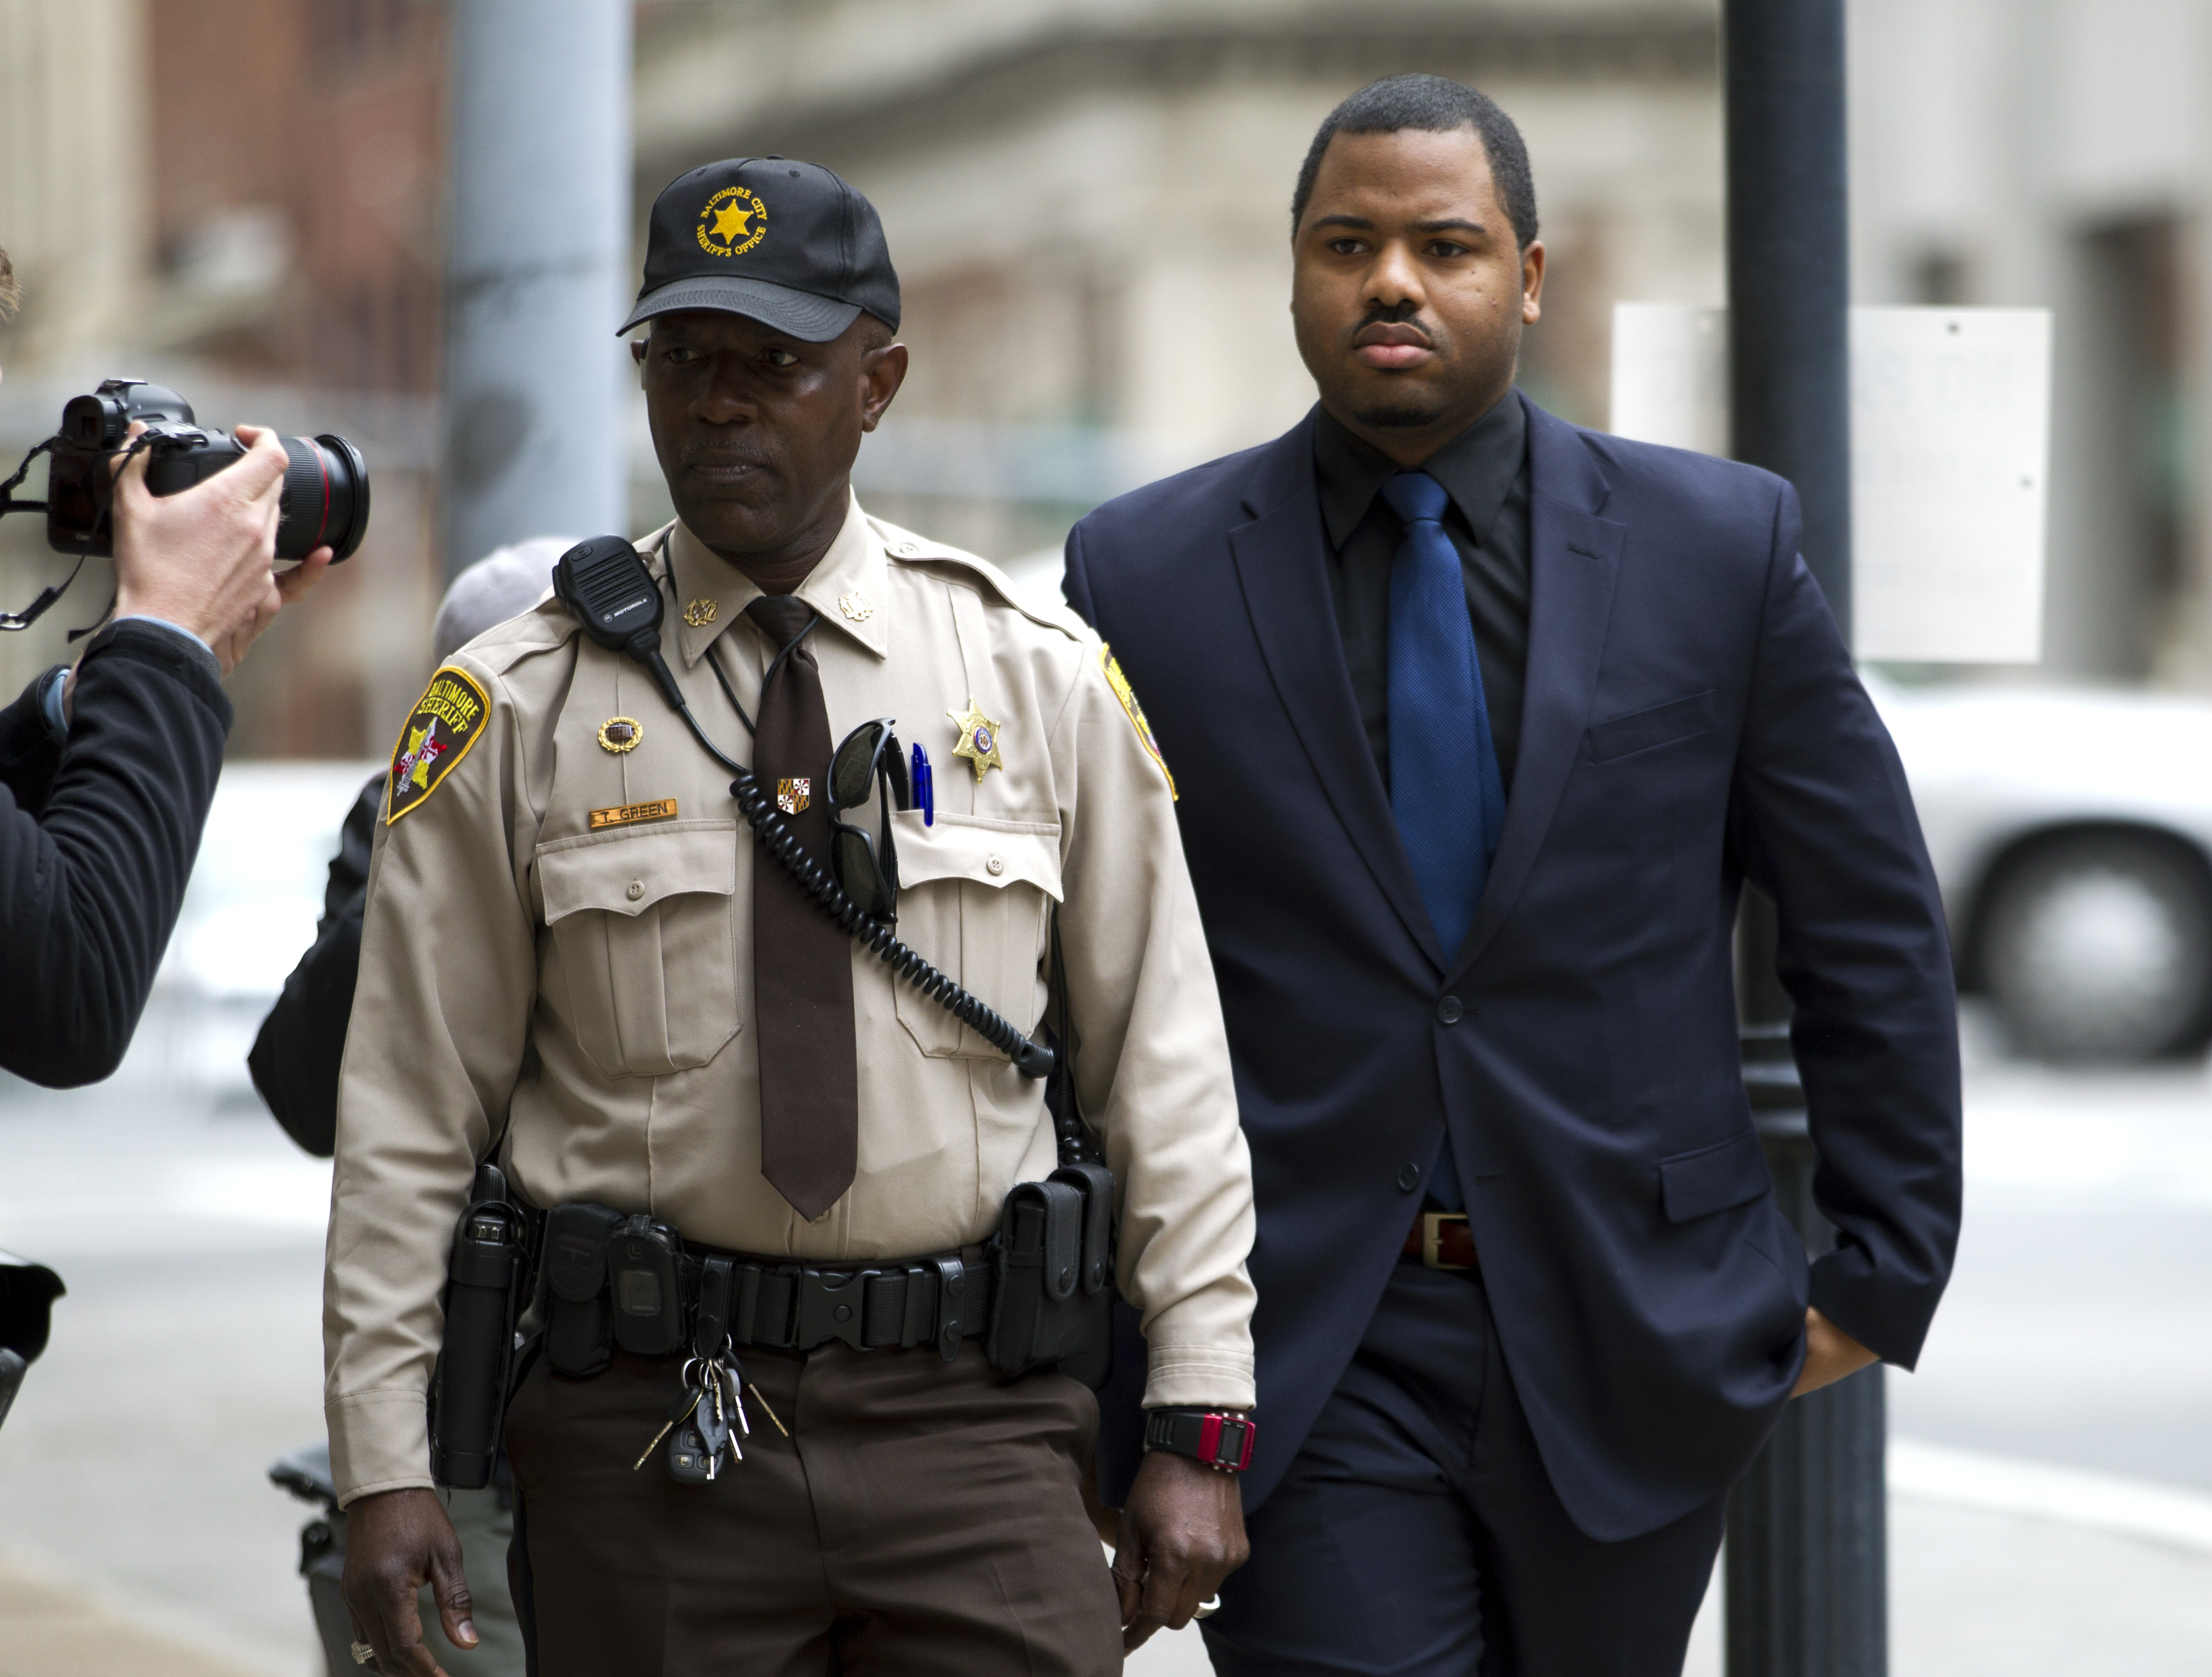 Officer William Porter arrives at a courthouse as jury deliberations continue in his trial on Dec. 16, 2015, in Baltimore Md.